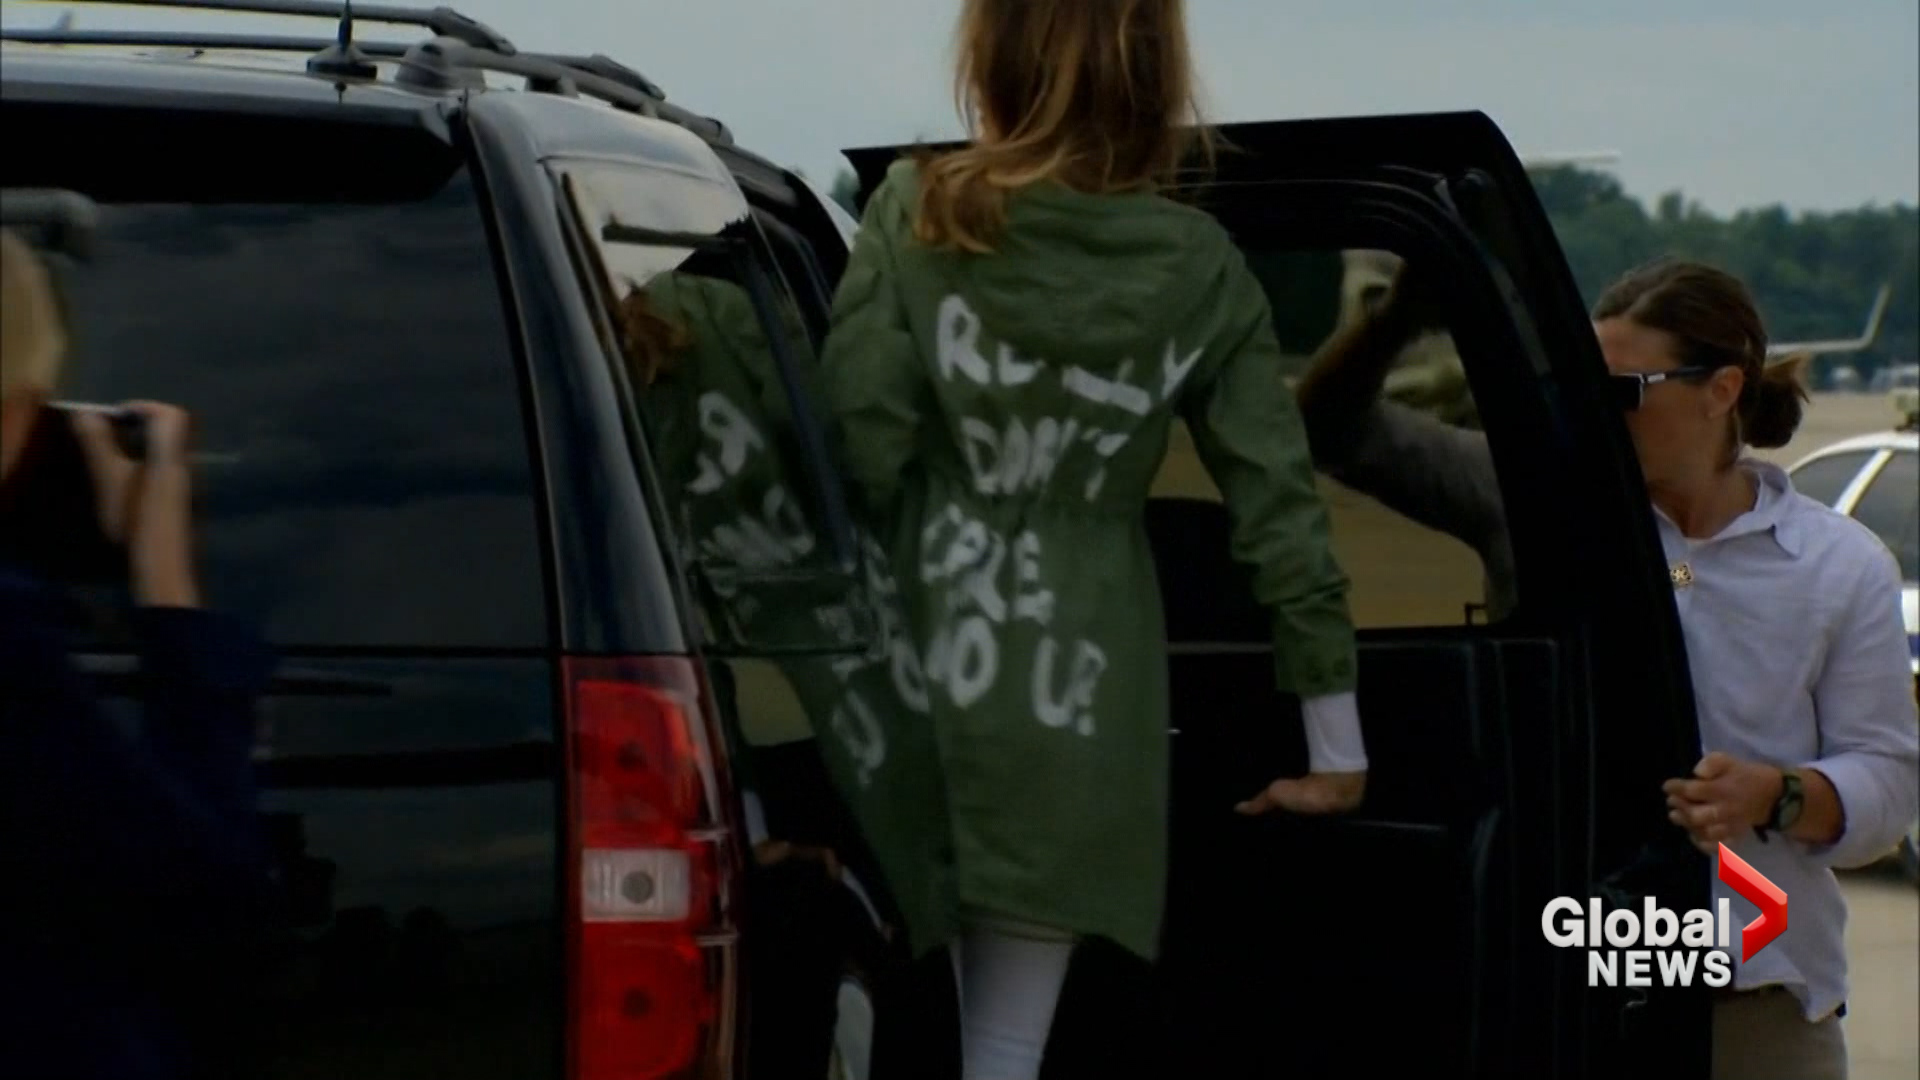 Melania 'deliberatelty' wore 'I don't care' jacket to meet child migrants